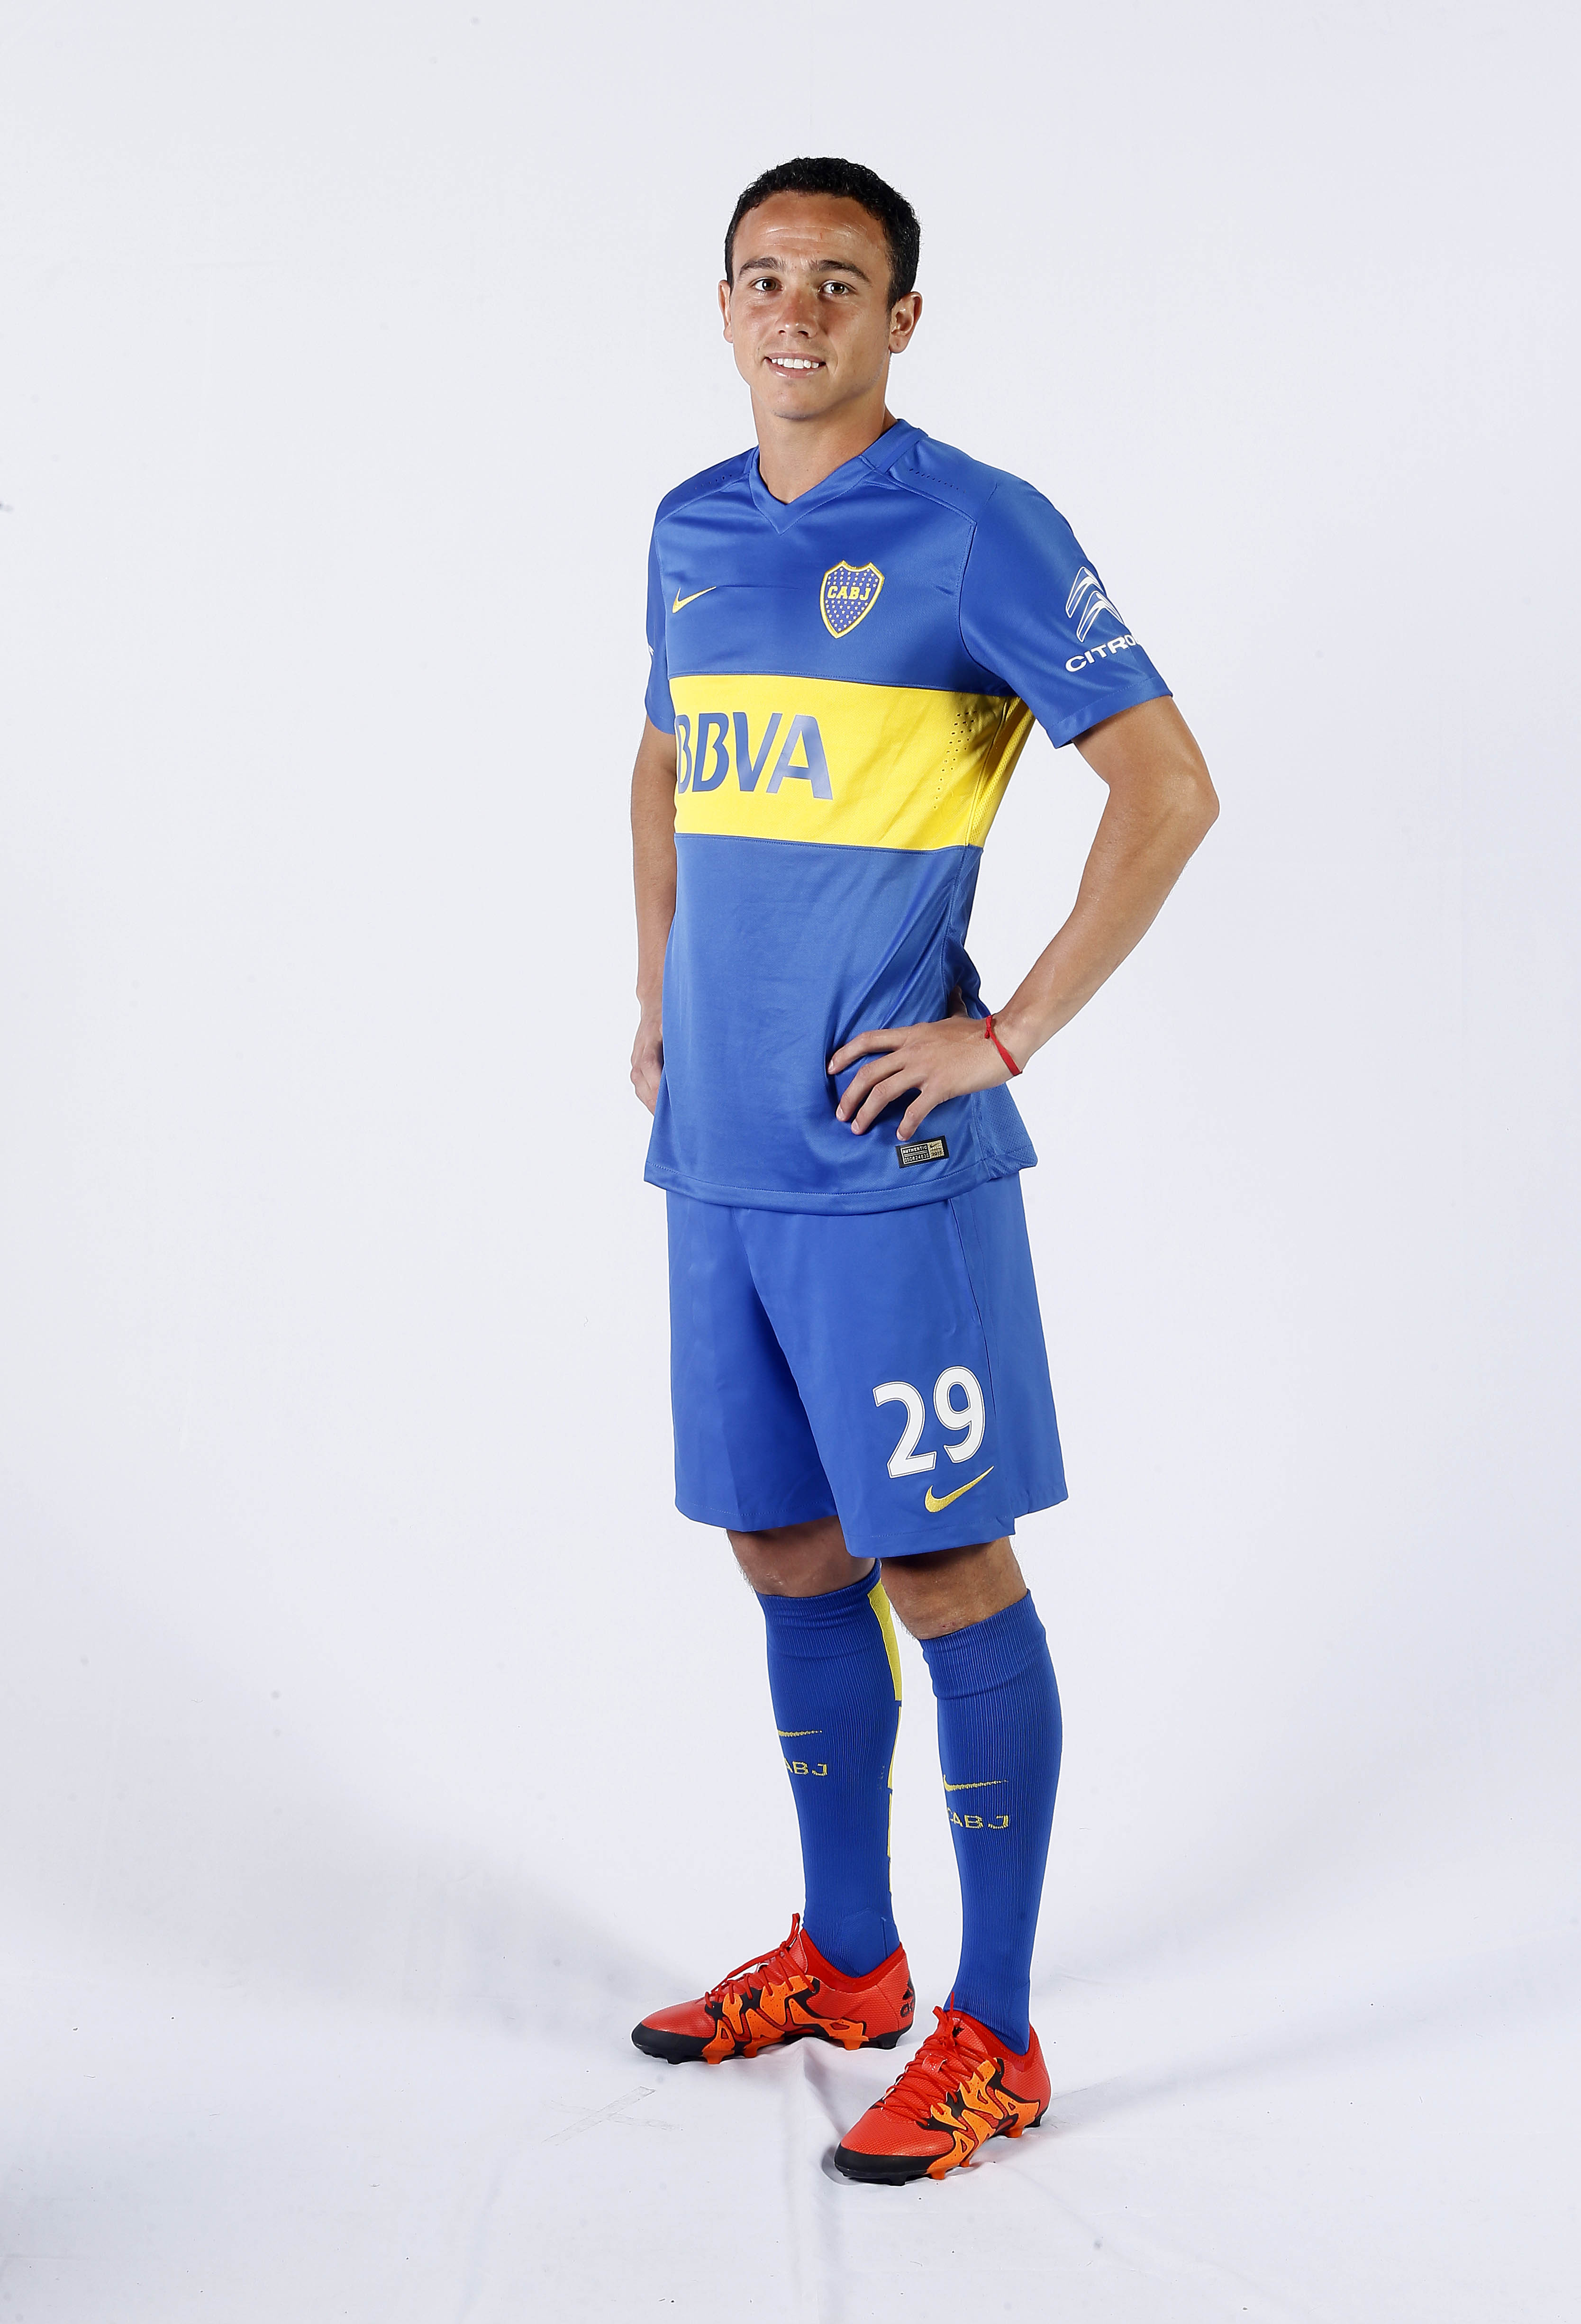 http://www.bocajuniors.com.ar/upload/files/-gmp7053_bf5a7.jpg